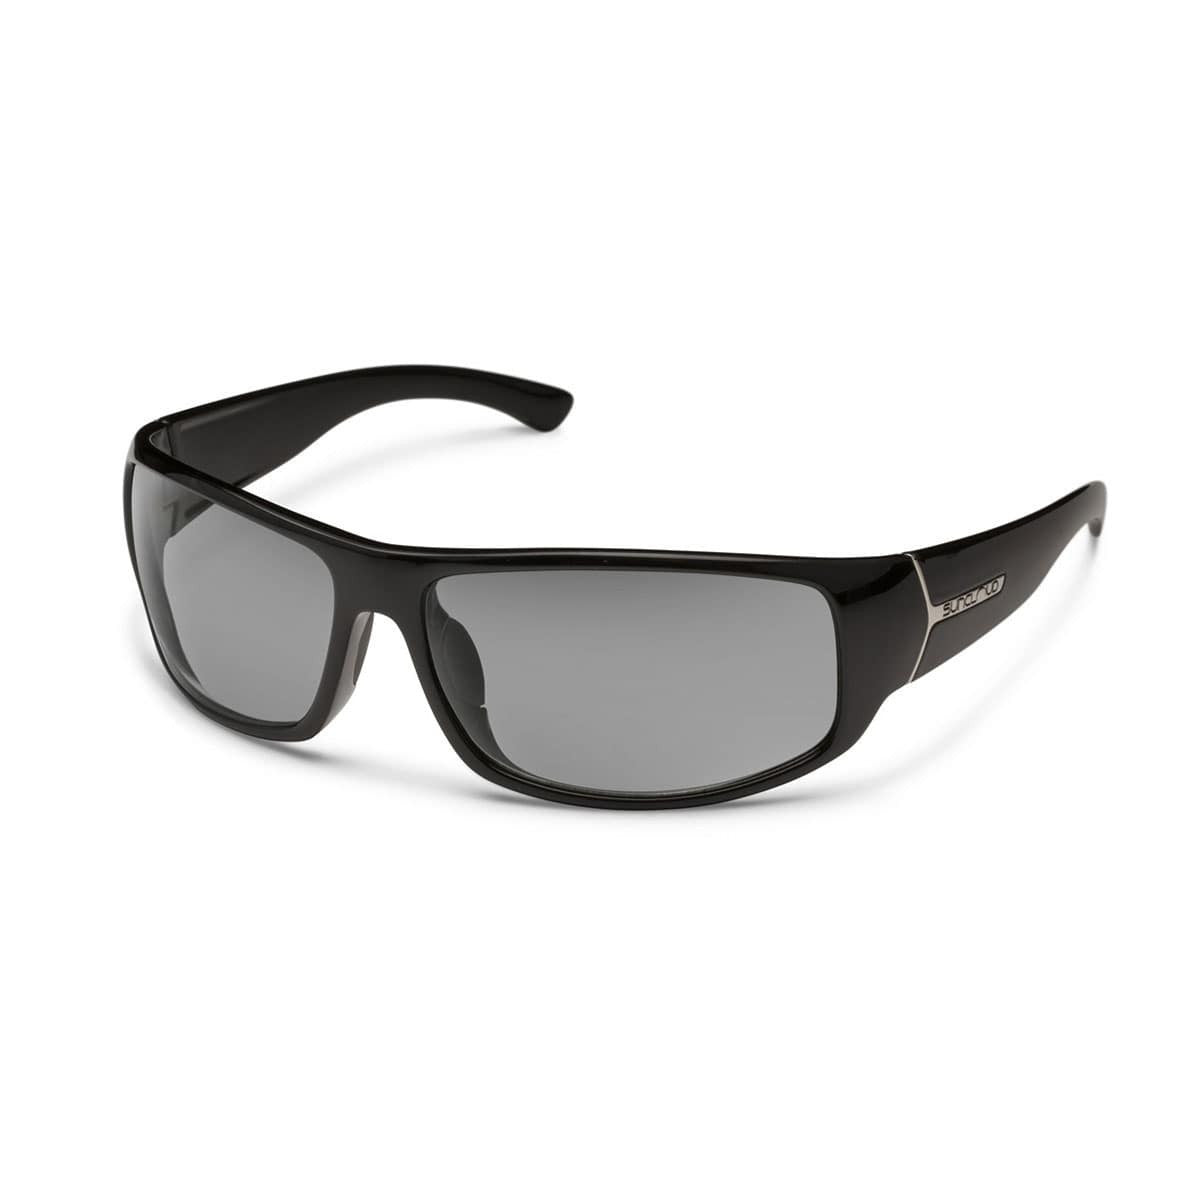 4423a9044e TURBINE BLACK FRAME WITH GRAY POLARIZED POLYCARBONATE LENS  Eyewear Accessories Suncloud - Hook 1 Outfitters